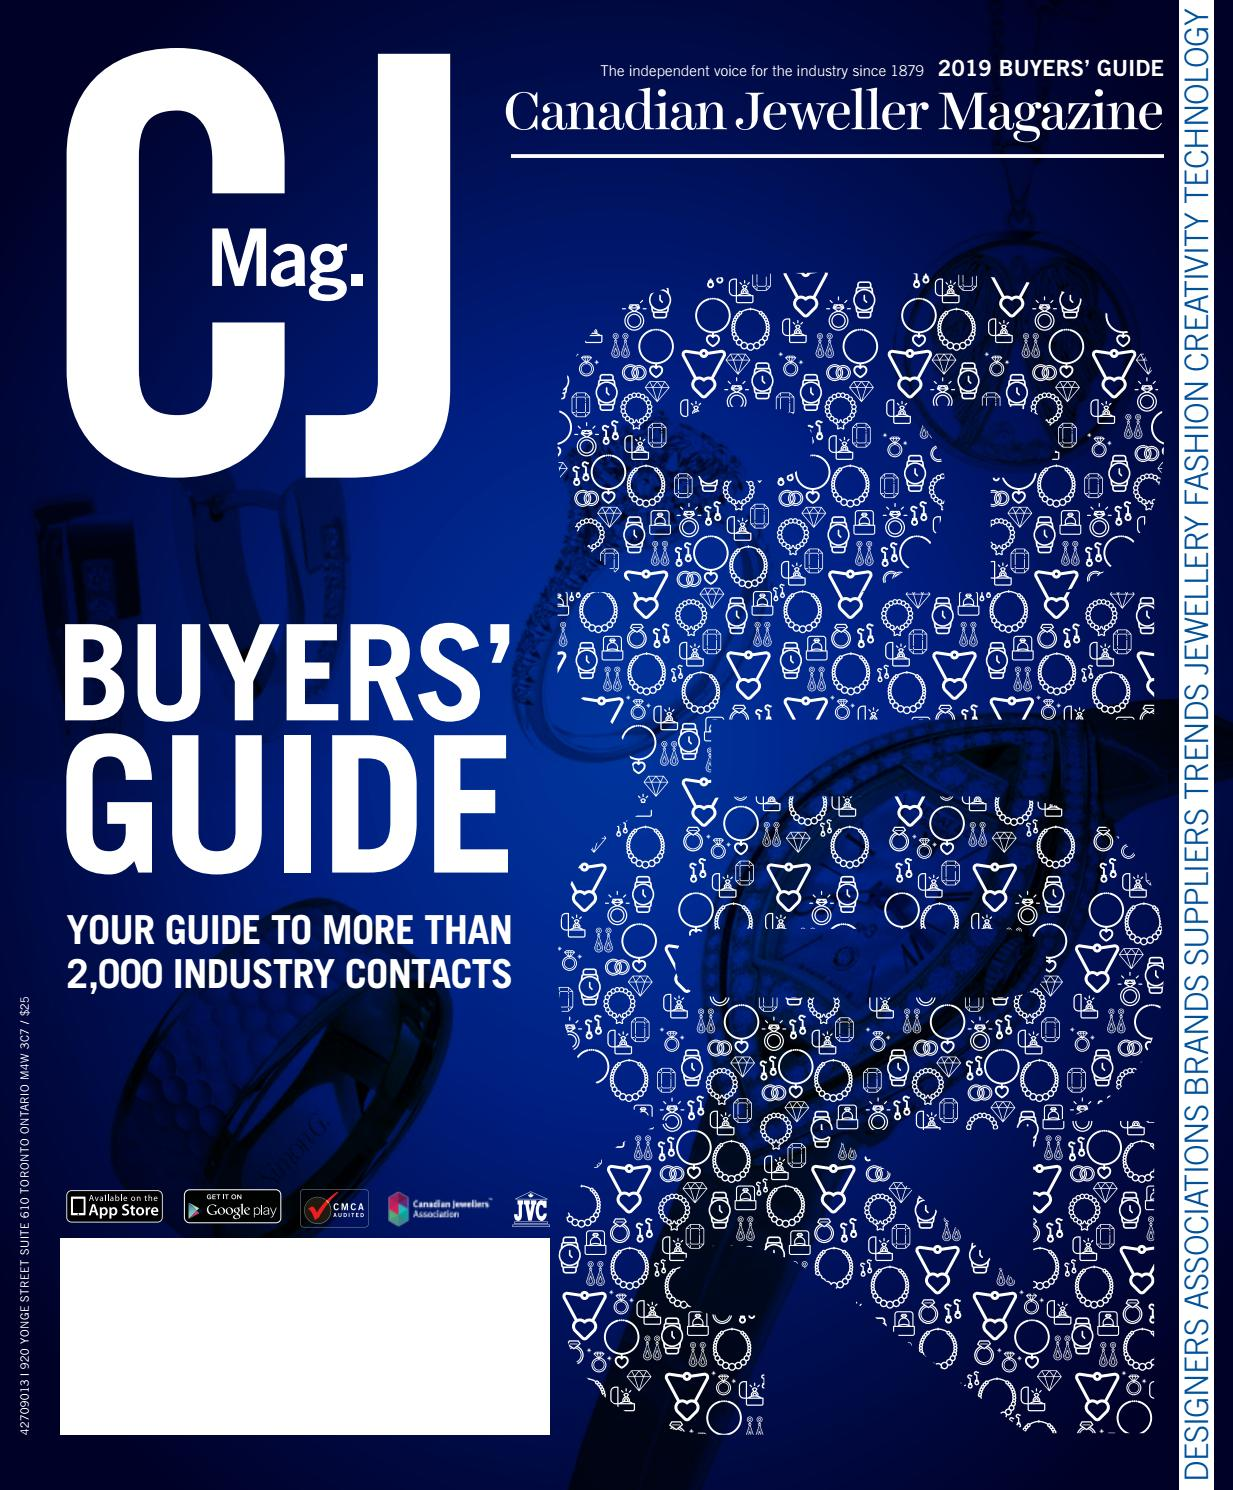 CJ Buyers' Guide 2019 by Canadian Jeweller Magazine - issuu